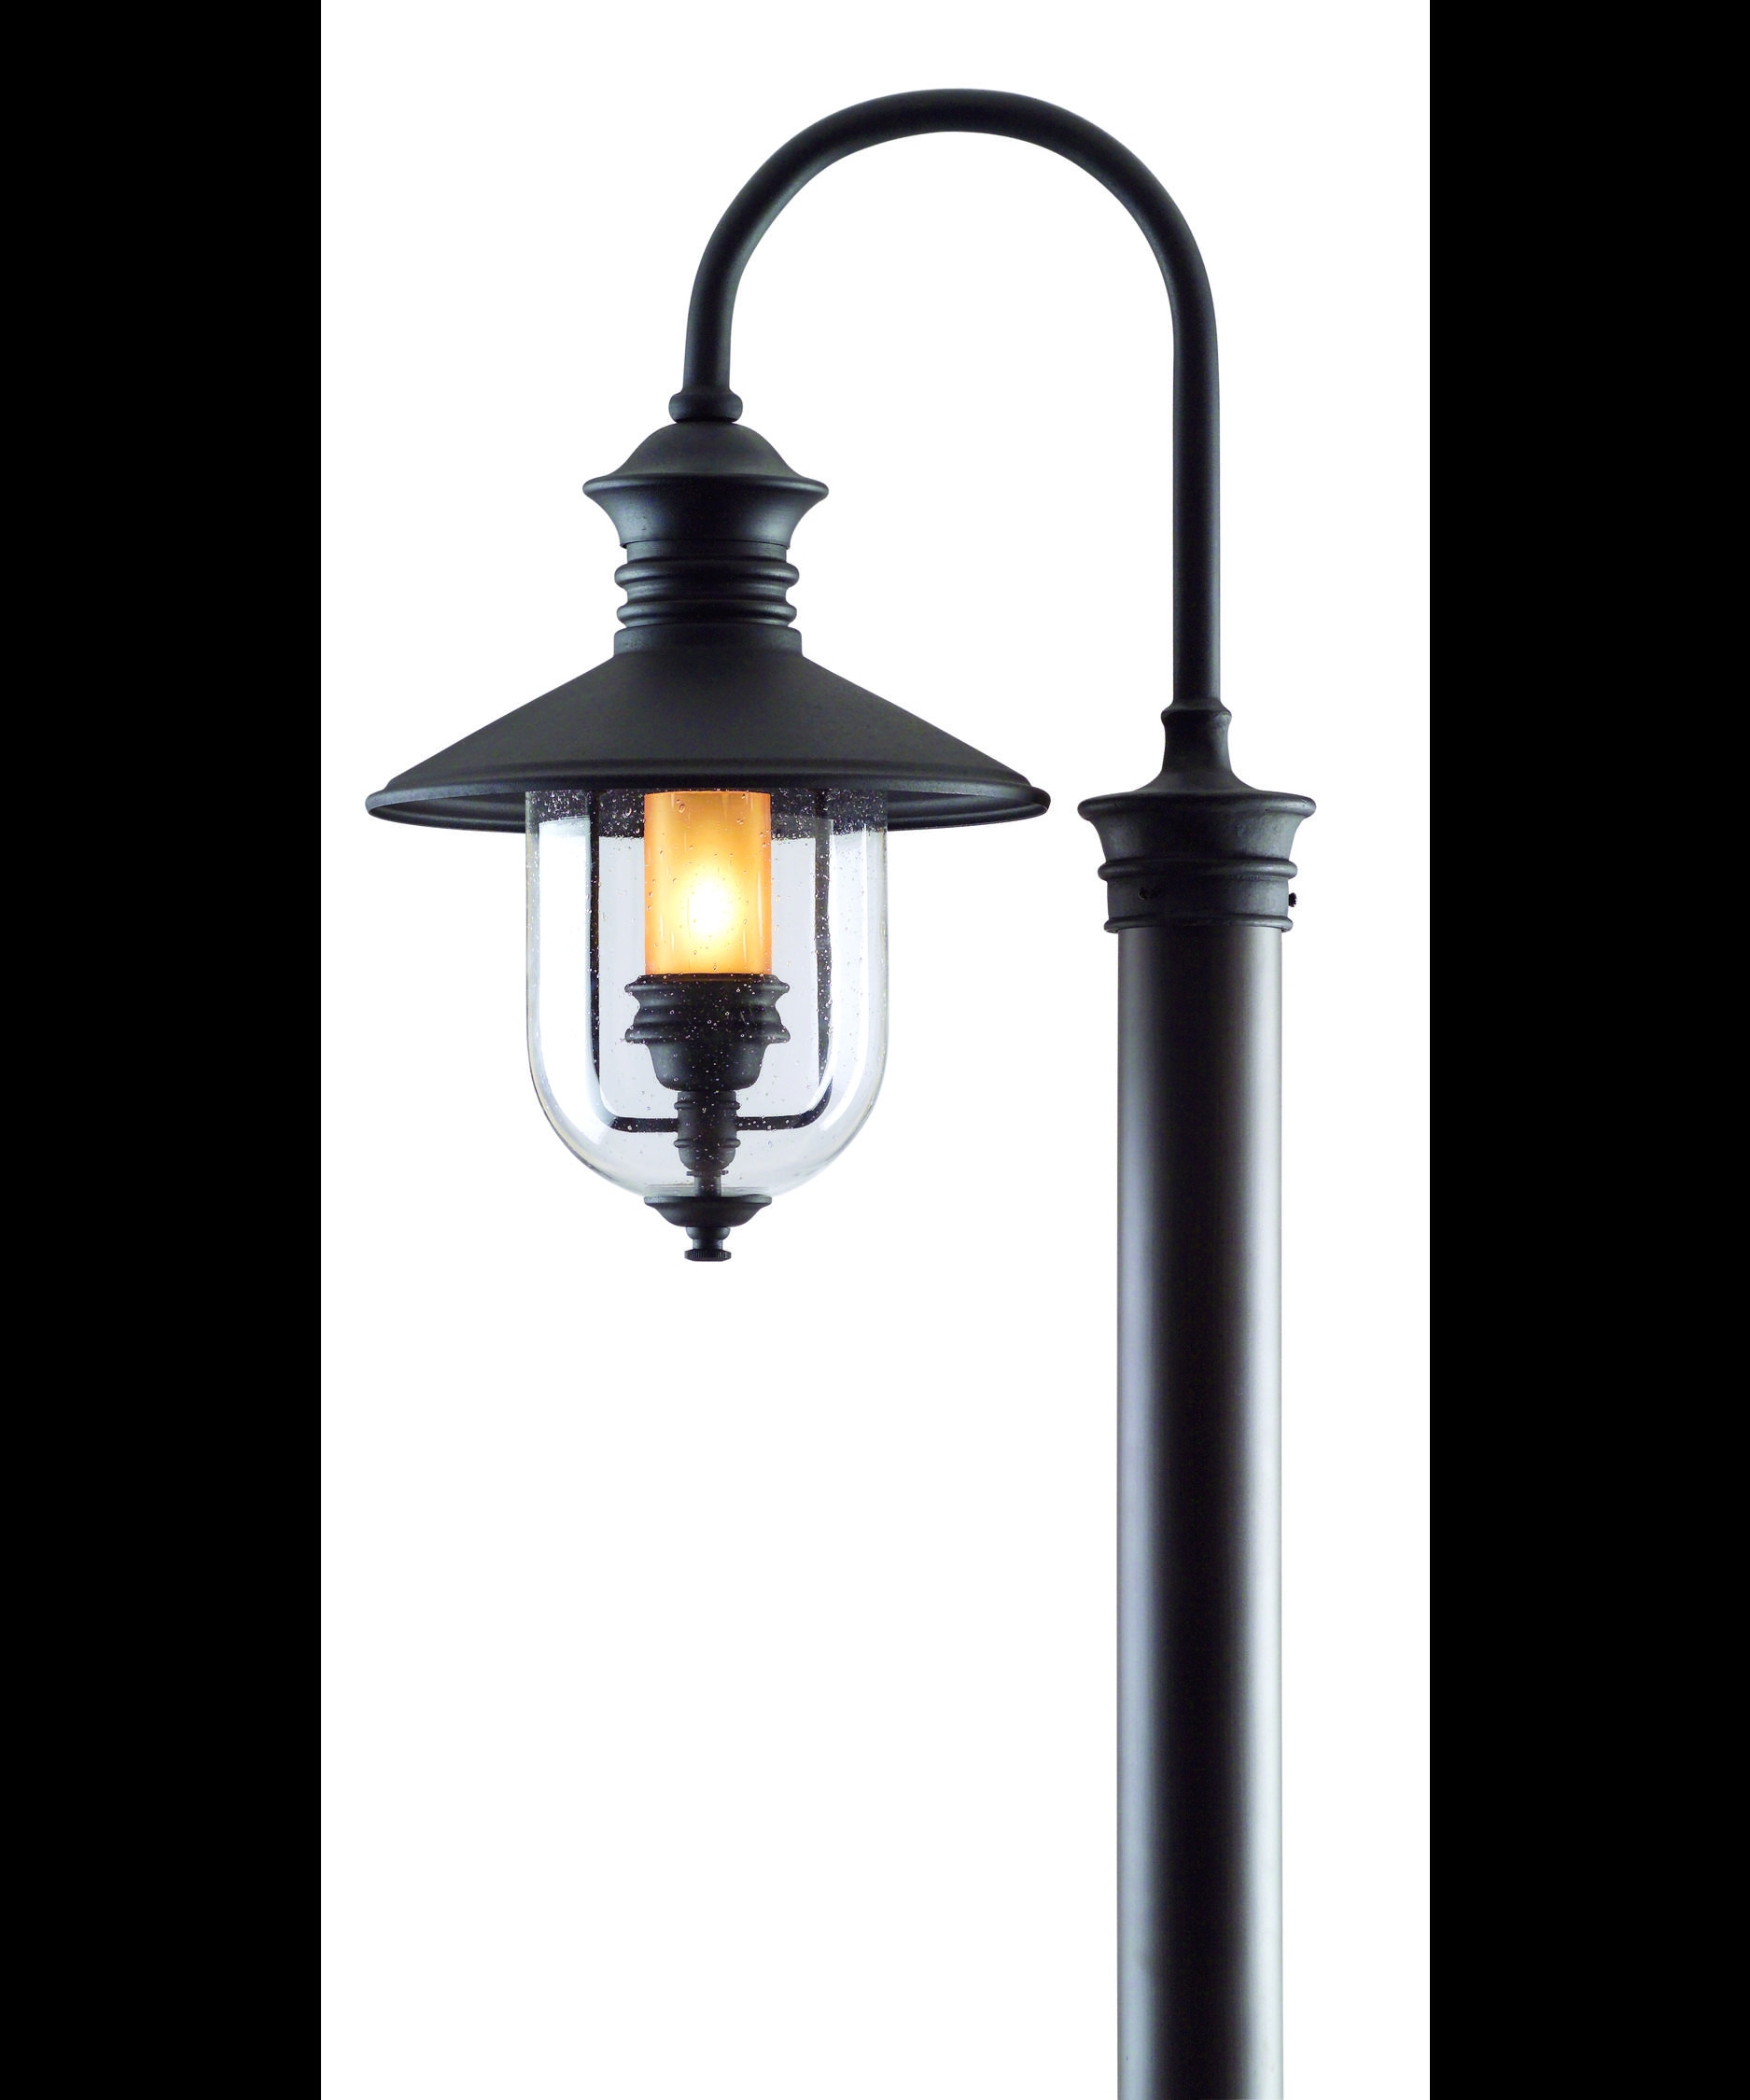 Fashionable Lighting Design Ideas: Unique Outdoor Post Lighting In Rustic Lamps Pertaining To Vintage And Rustic Outdoor Lighting (View 8 of 20)